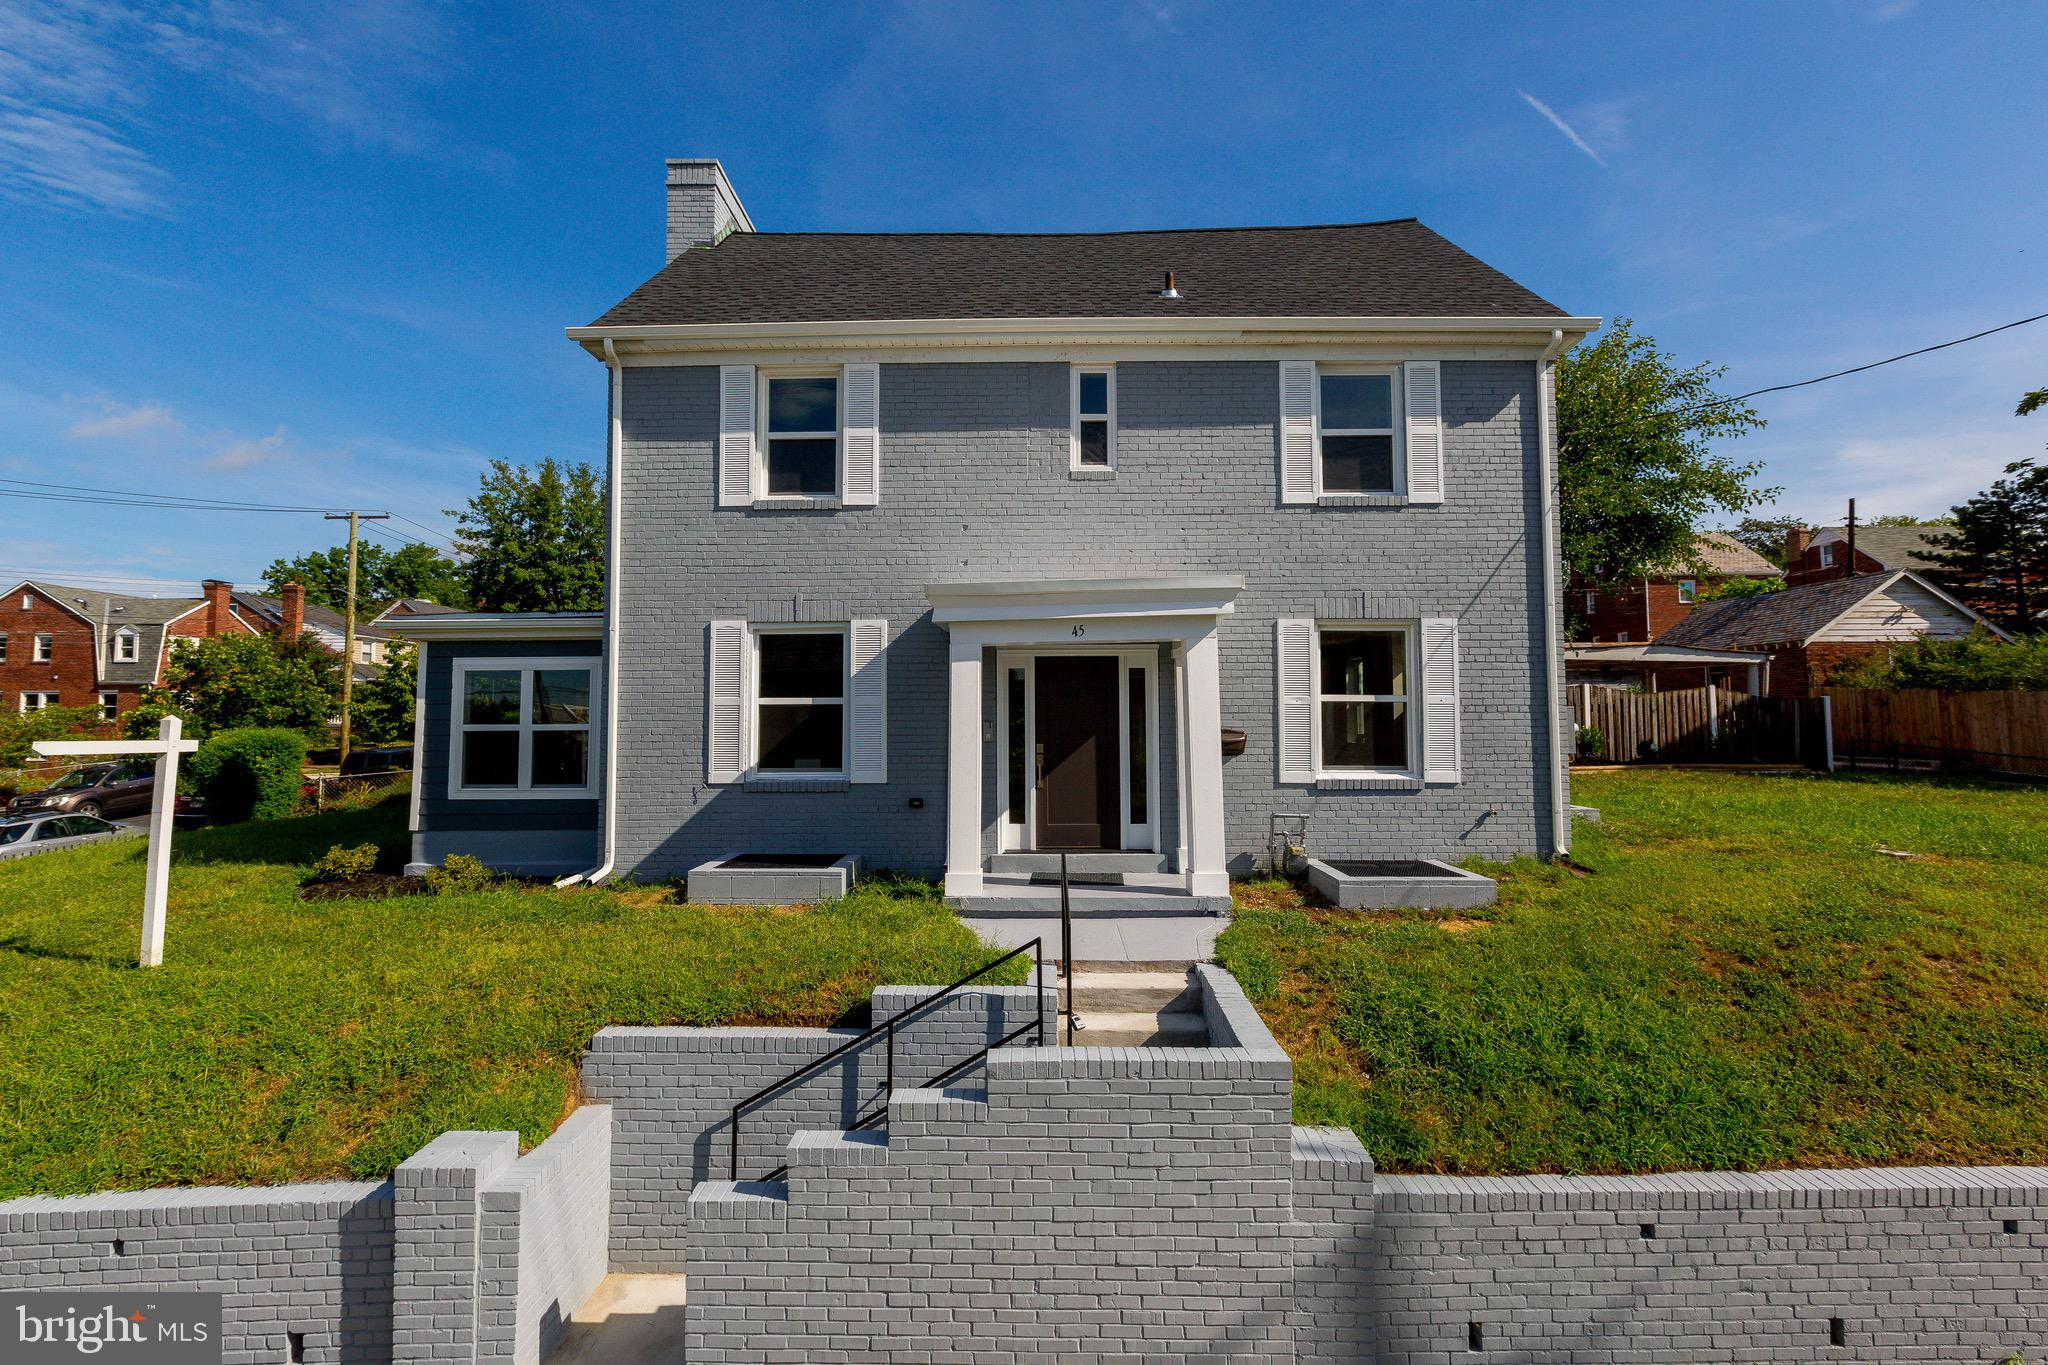 Newly renovated home near busy Kennedy ST NW. This 4 bedroom 3 1/2 bath with room for another bedroo